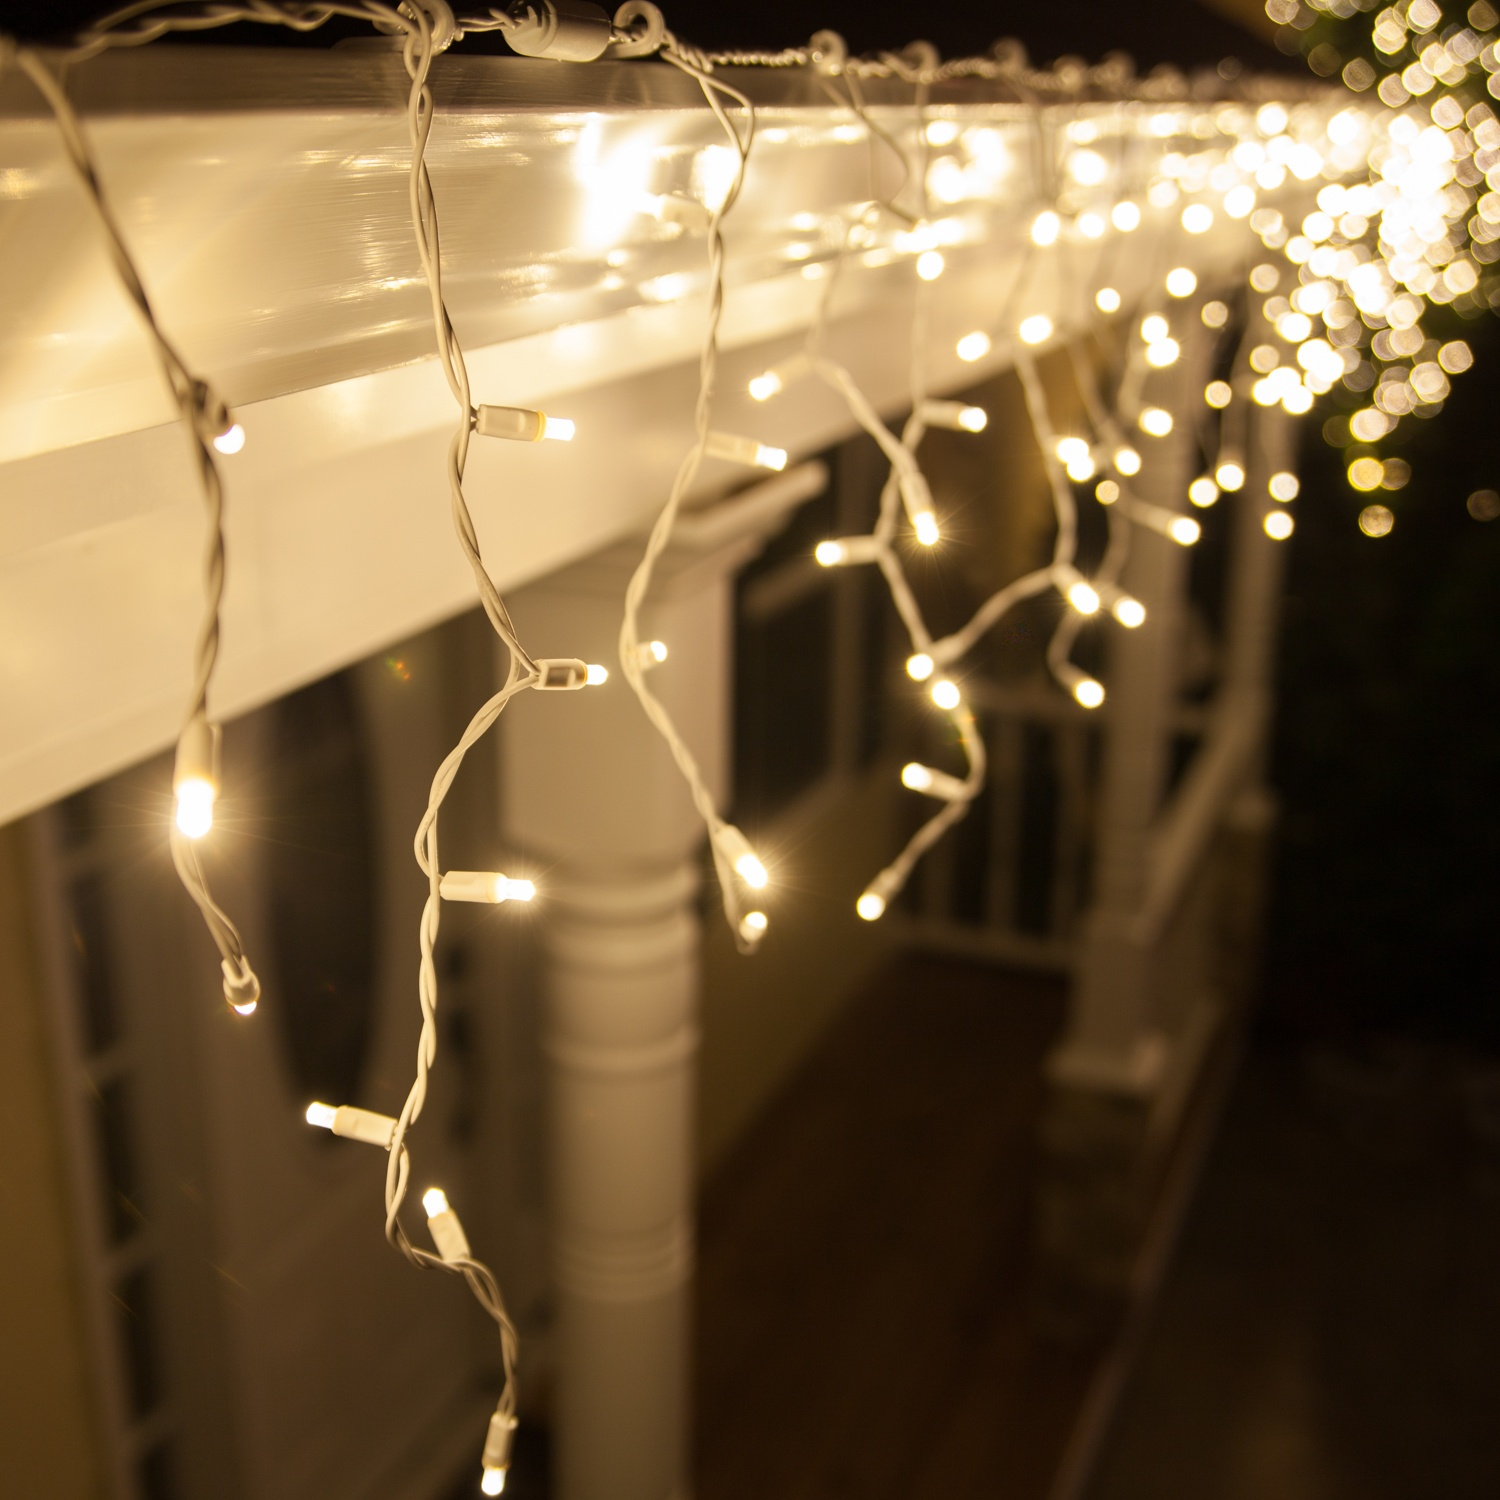 LED Christmas Lights - 70 5mm Warm White Twinkle LED Icicle Lights